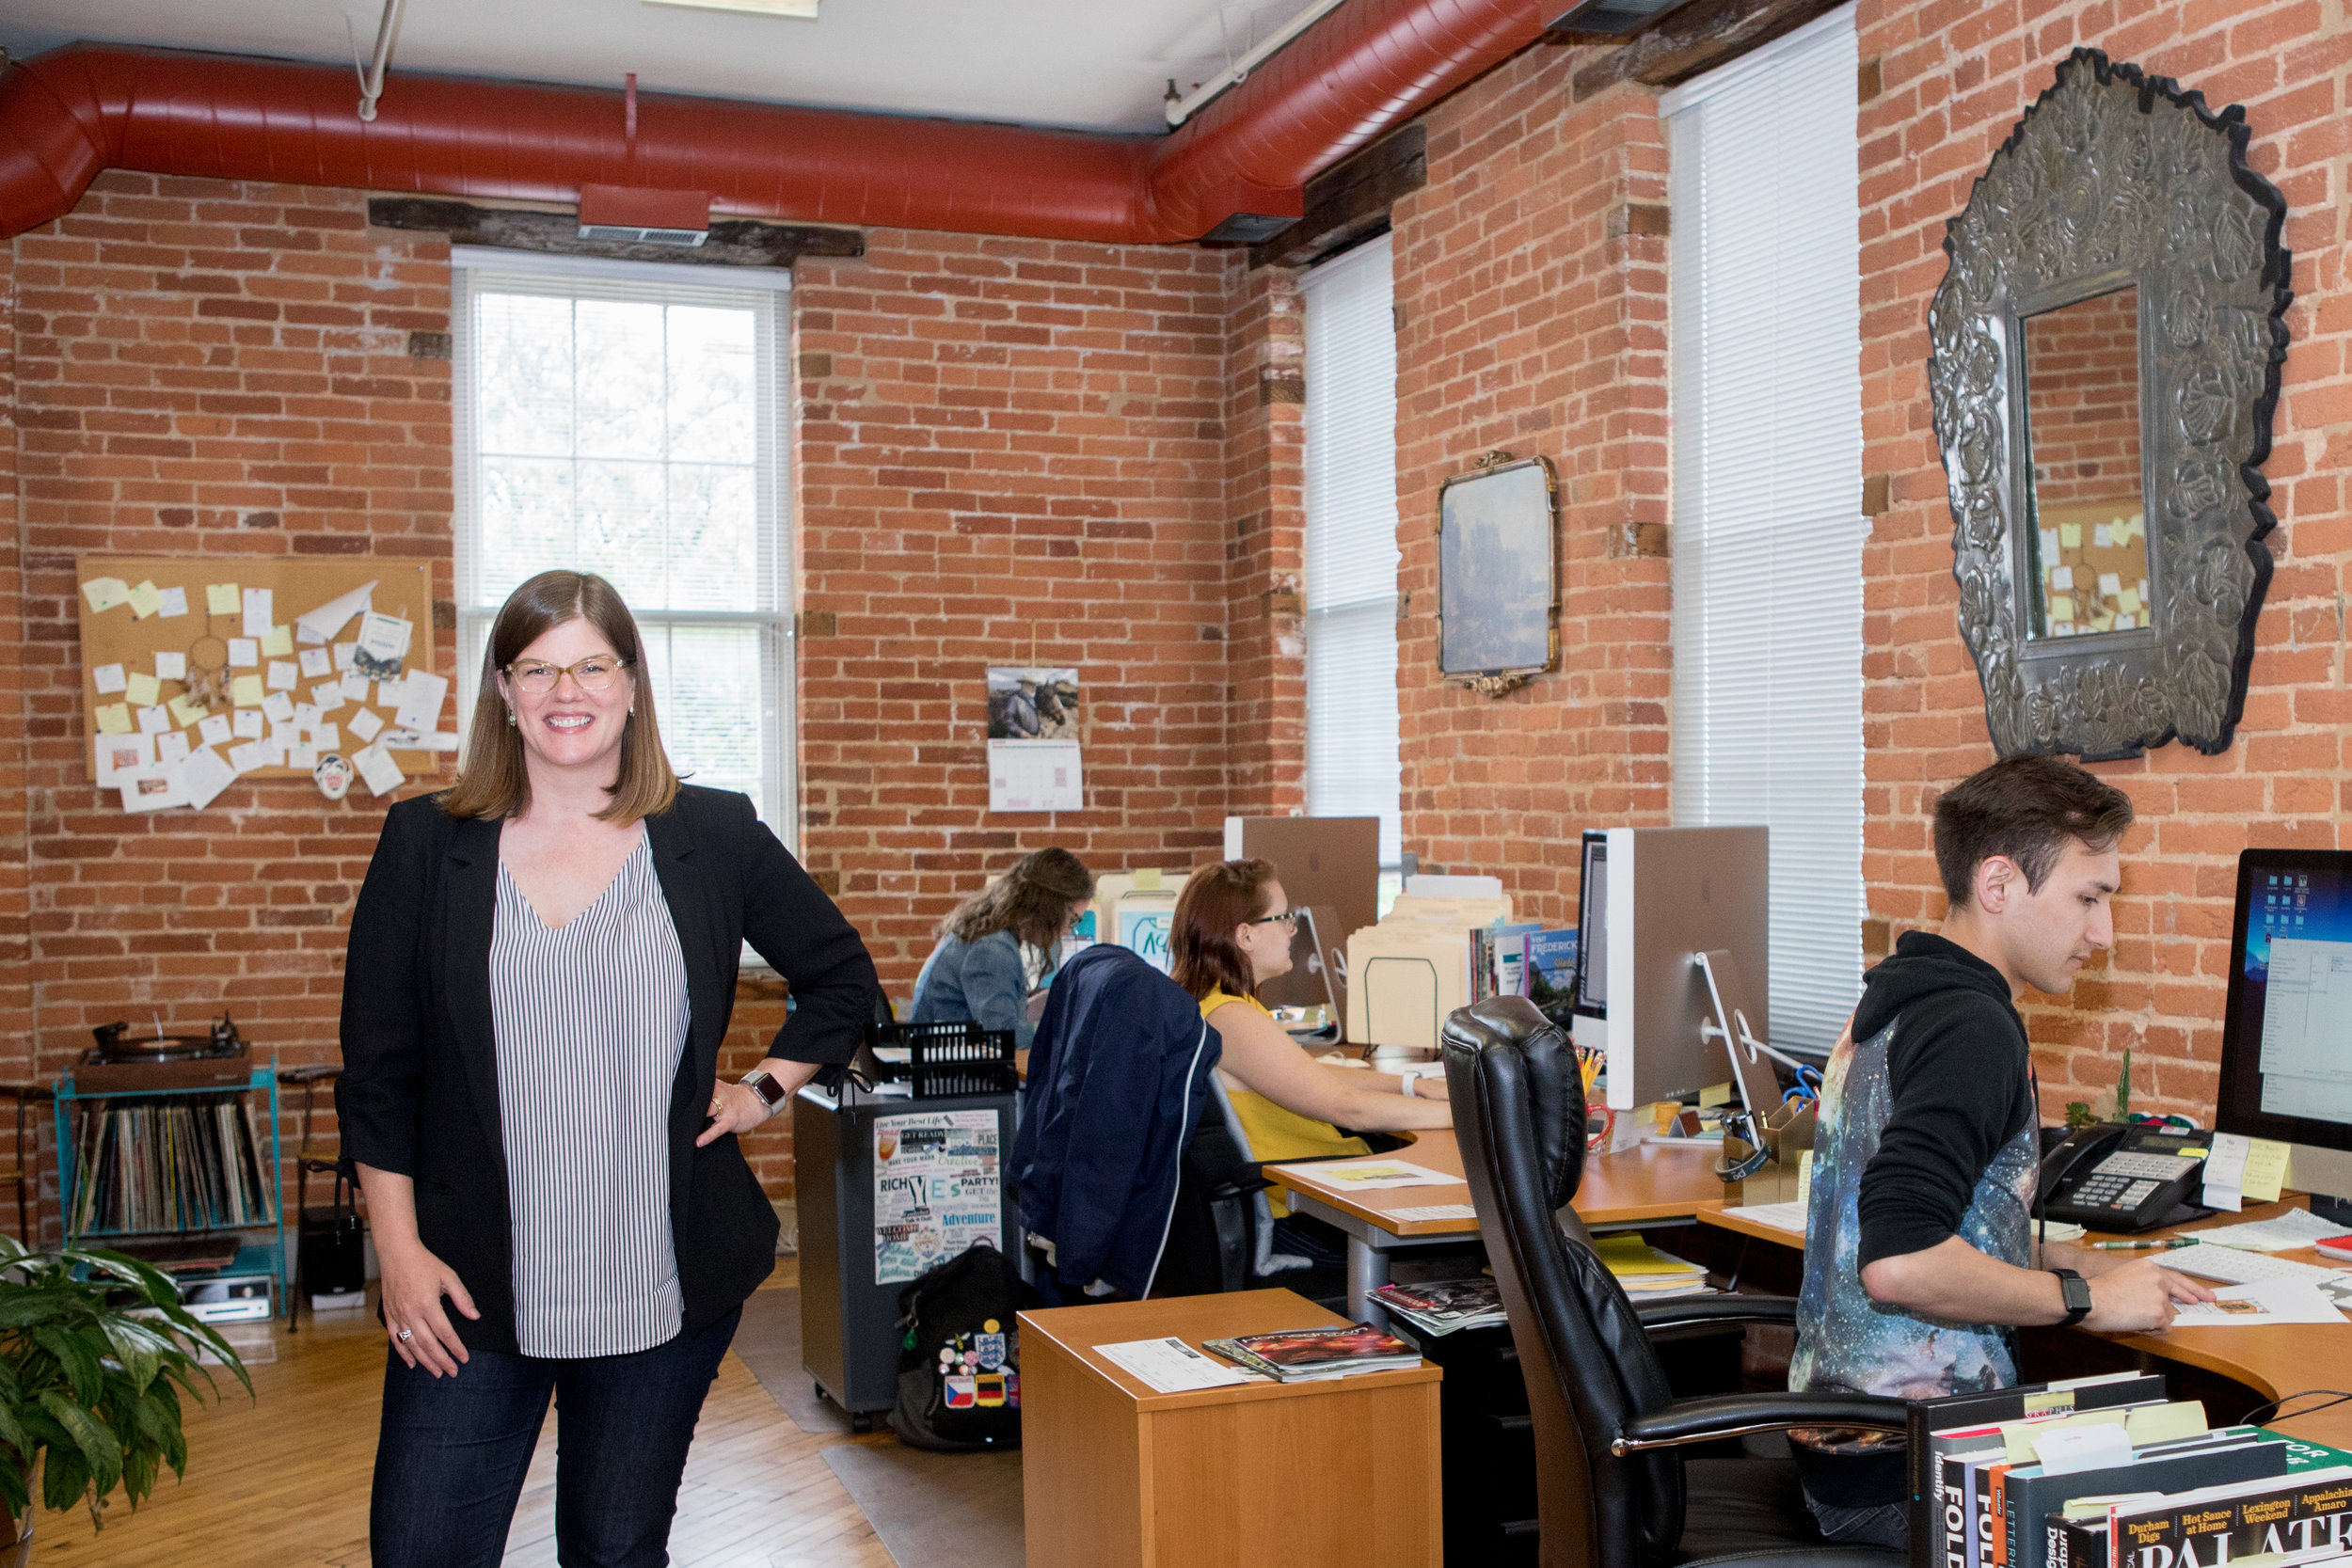 After working in the world of graphic design for over two decades, Emily Dorr has put her entrepreneurial skills to work at Postern Agency.